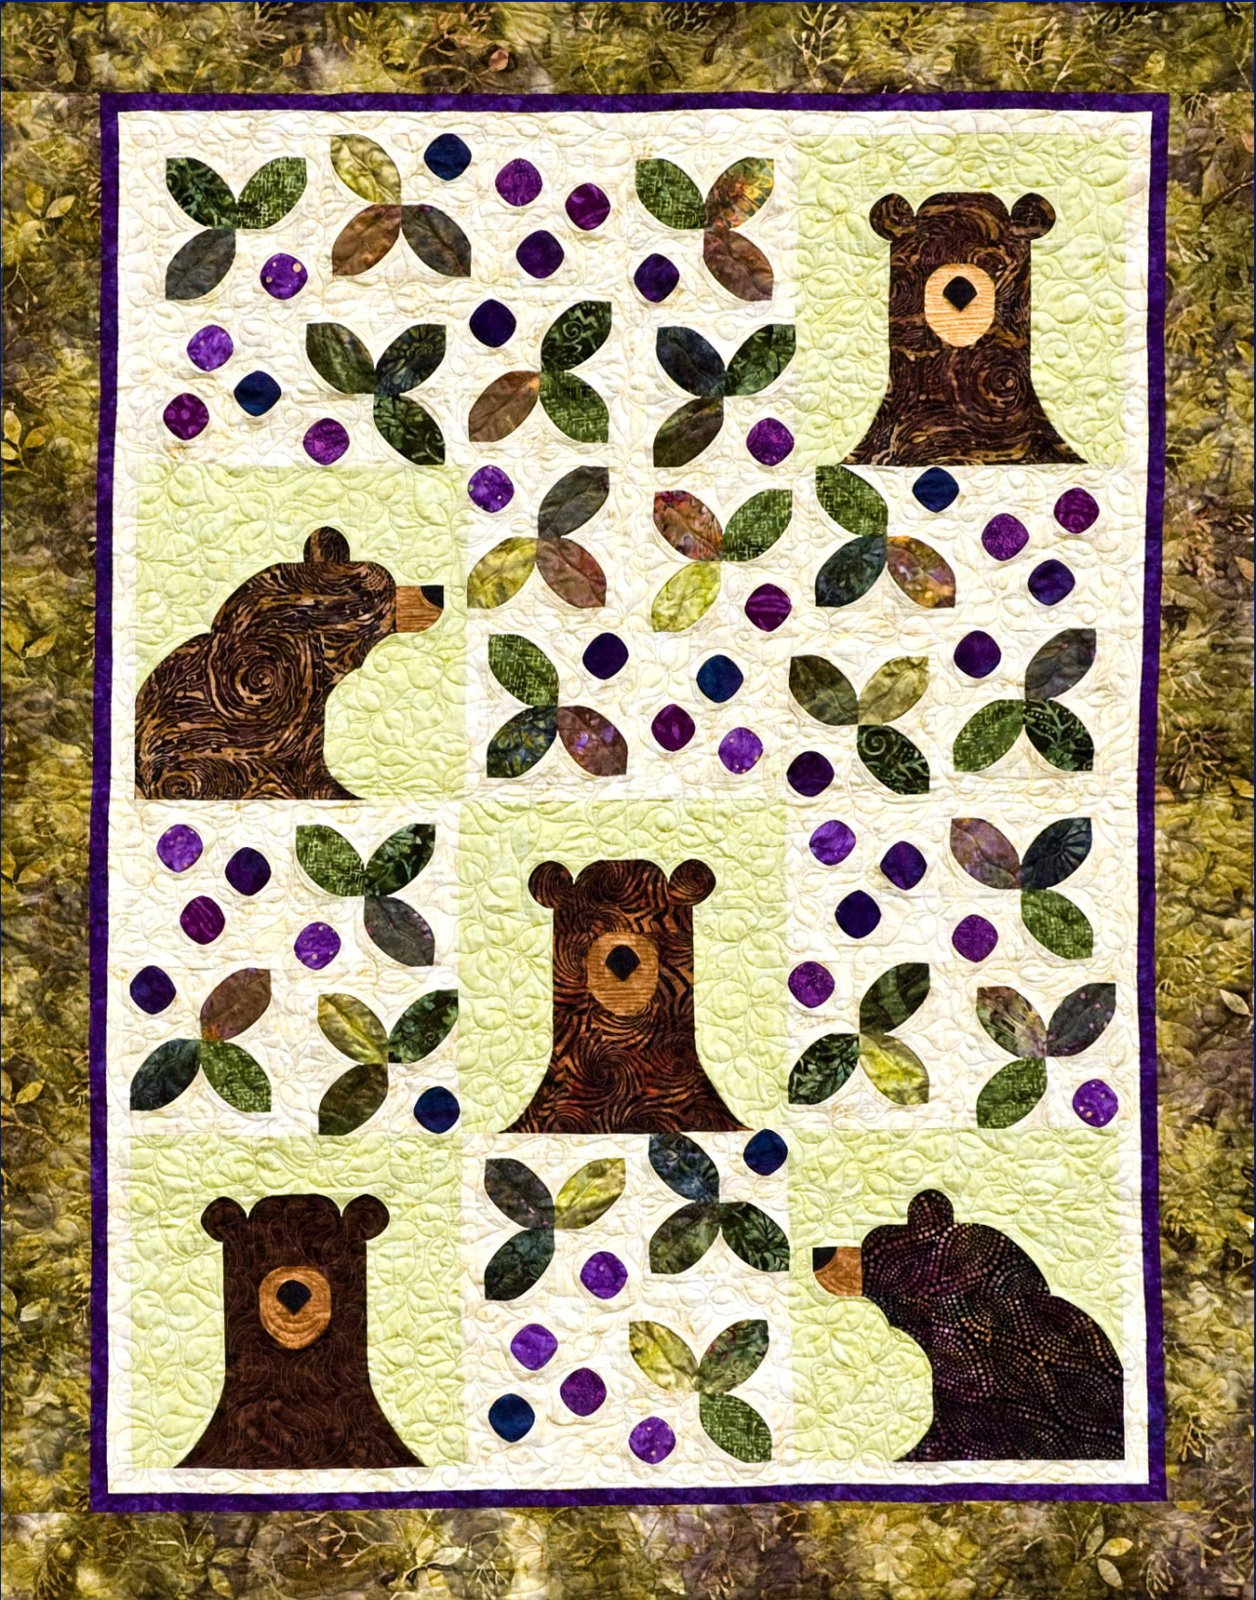 Bear-y Patches